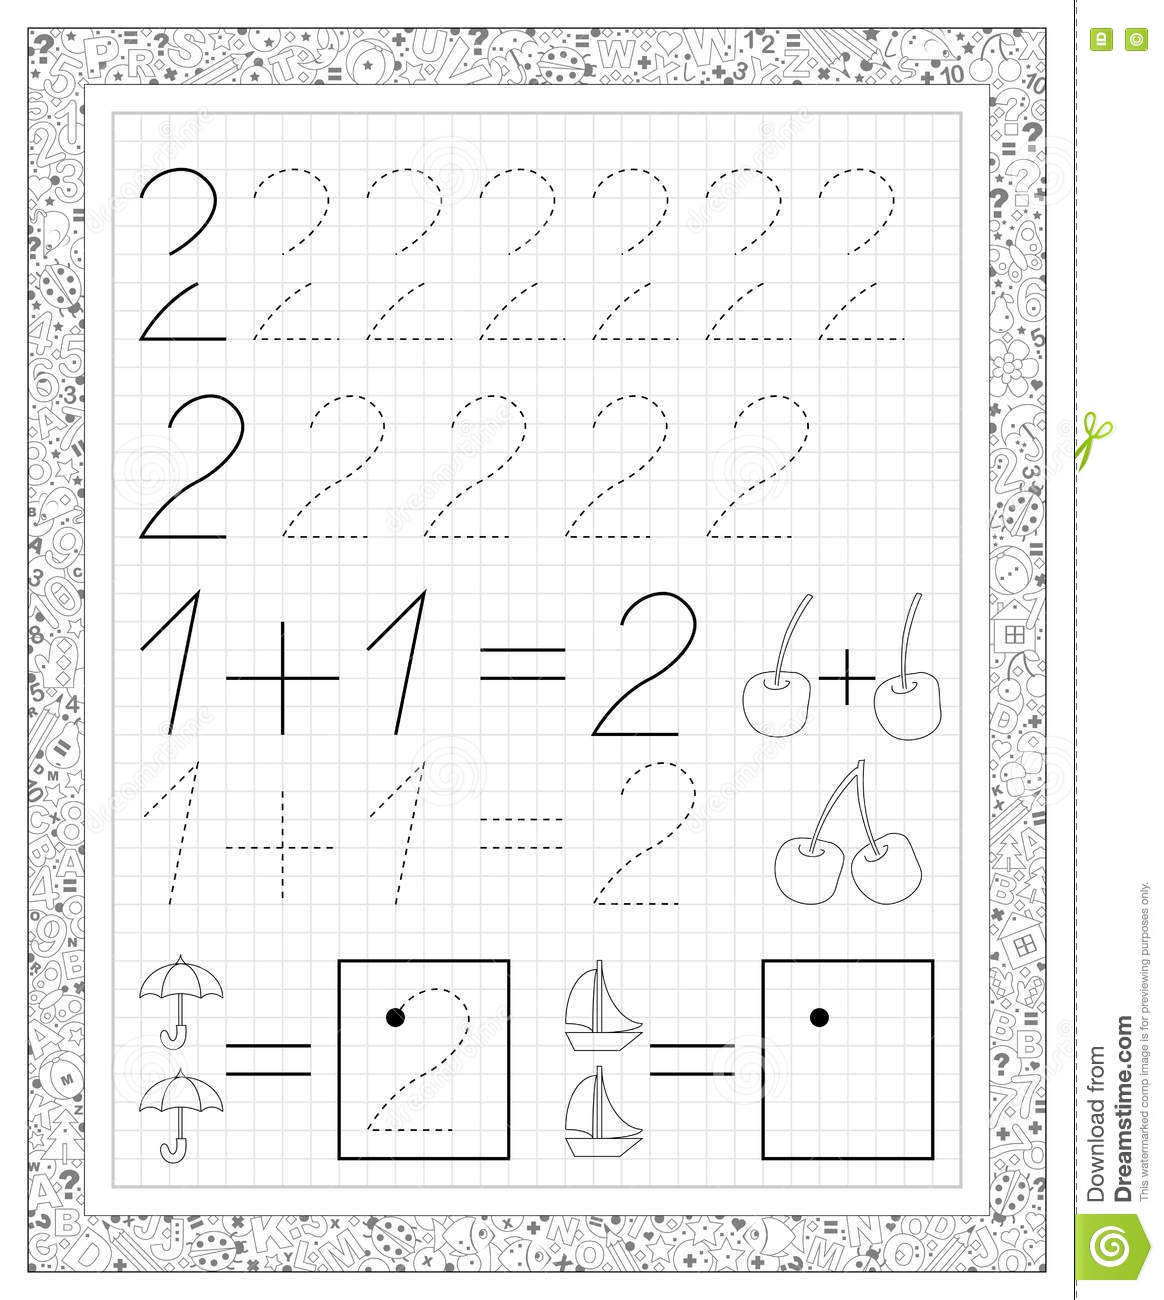 Black And White Worksheet On A Square Paper With Exercises For Little Children Page With Number